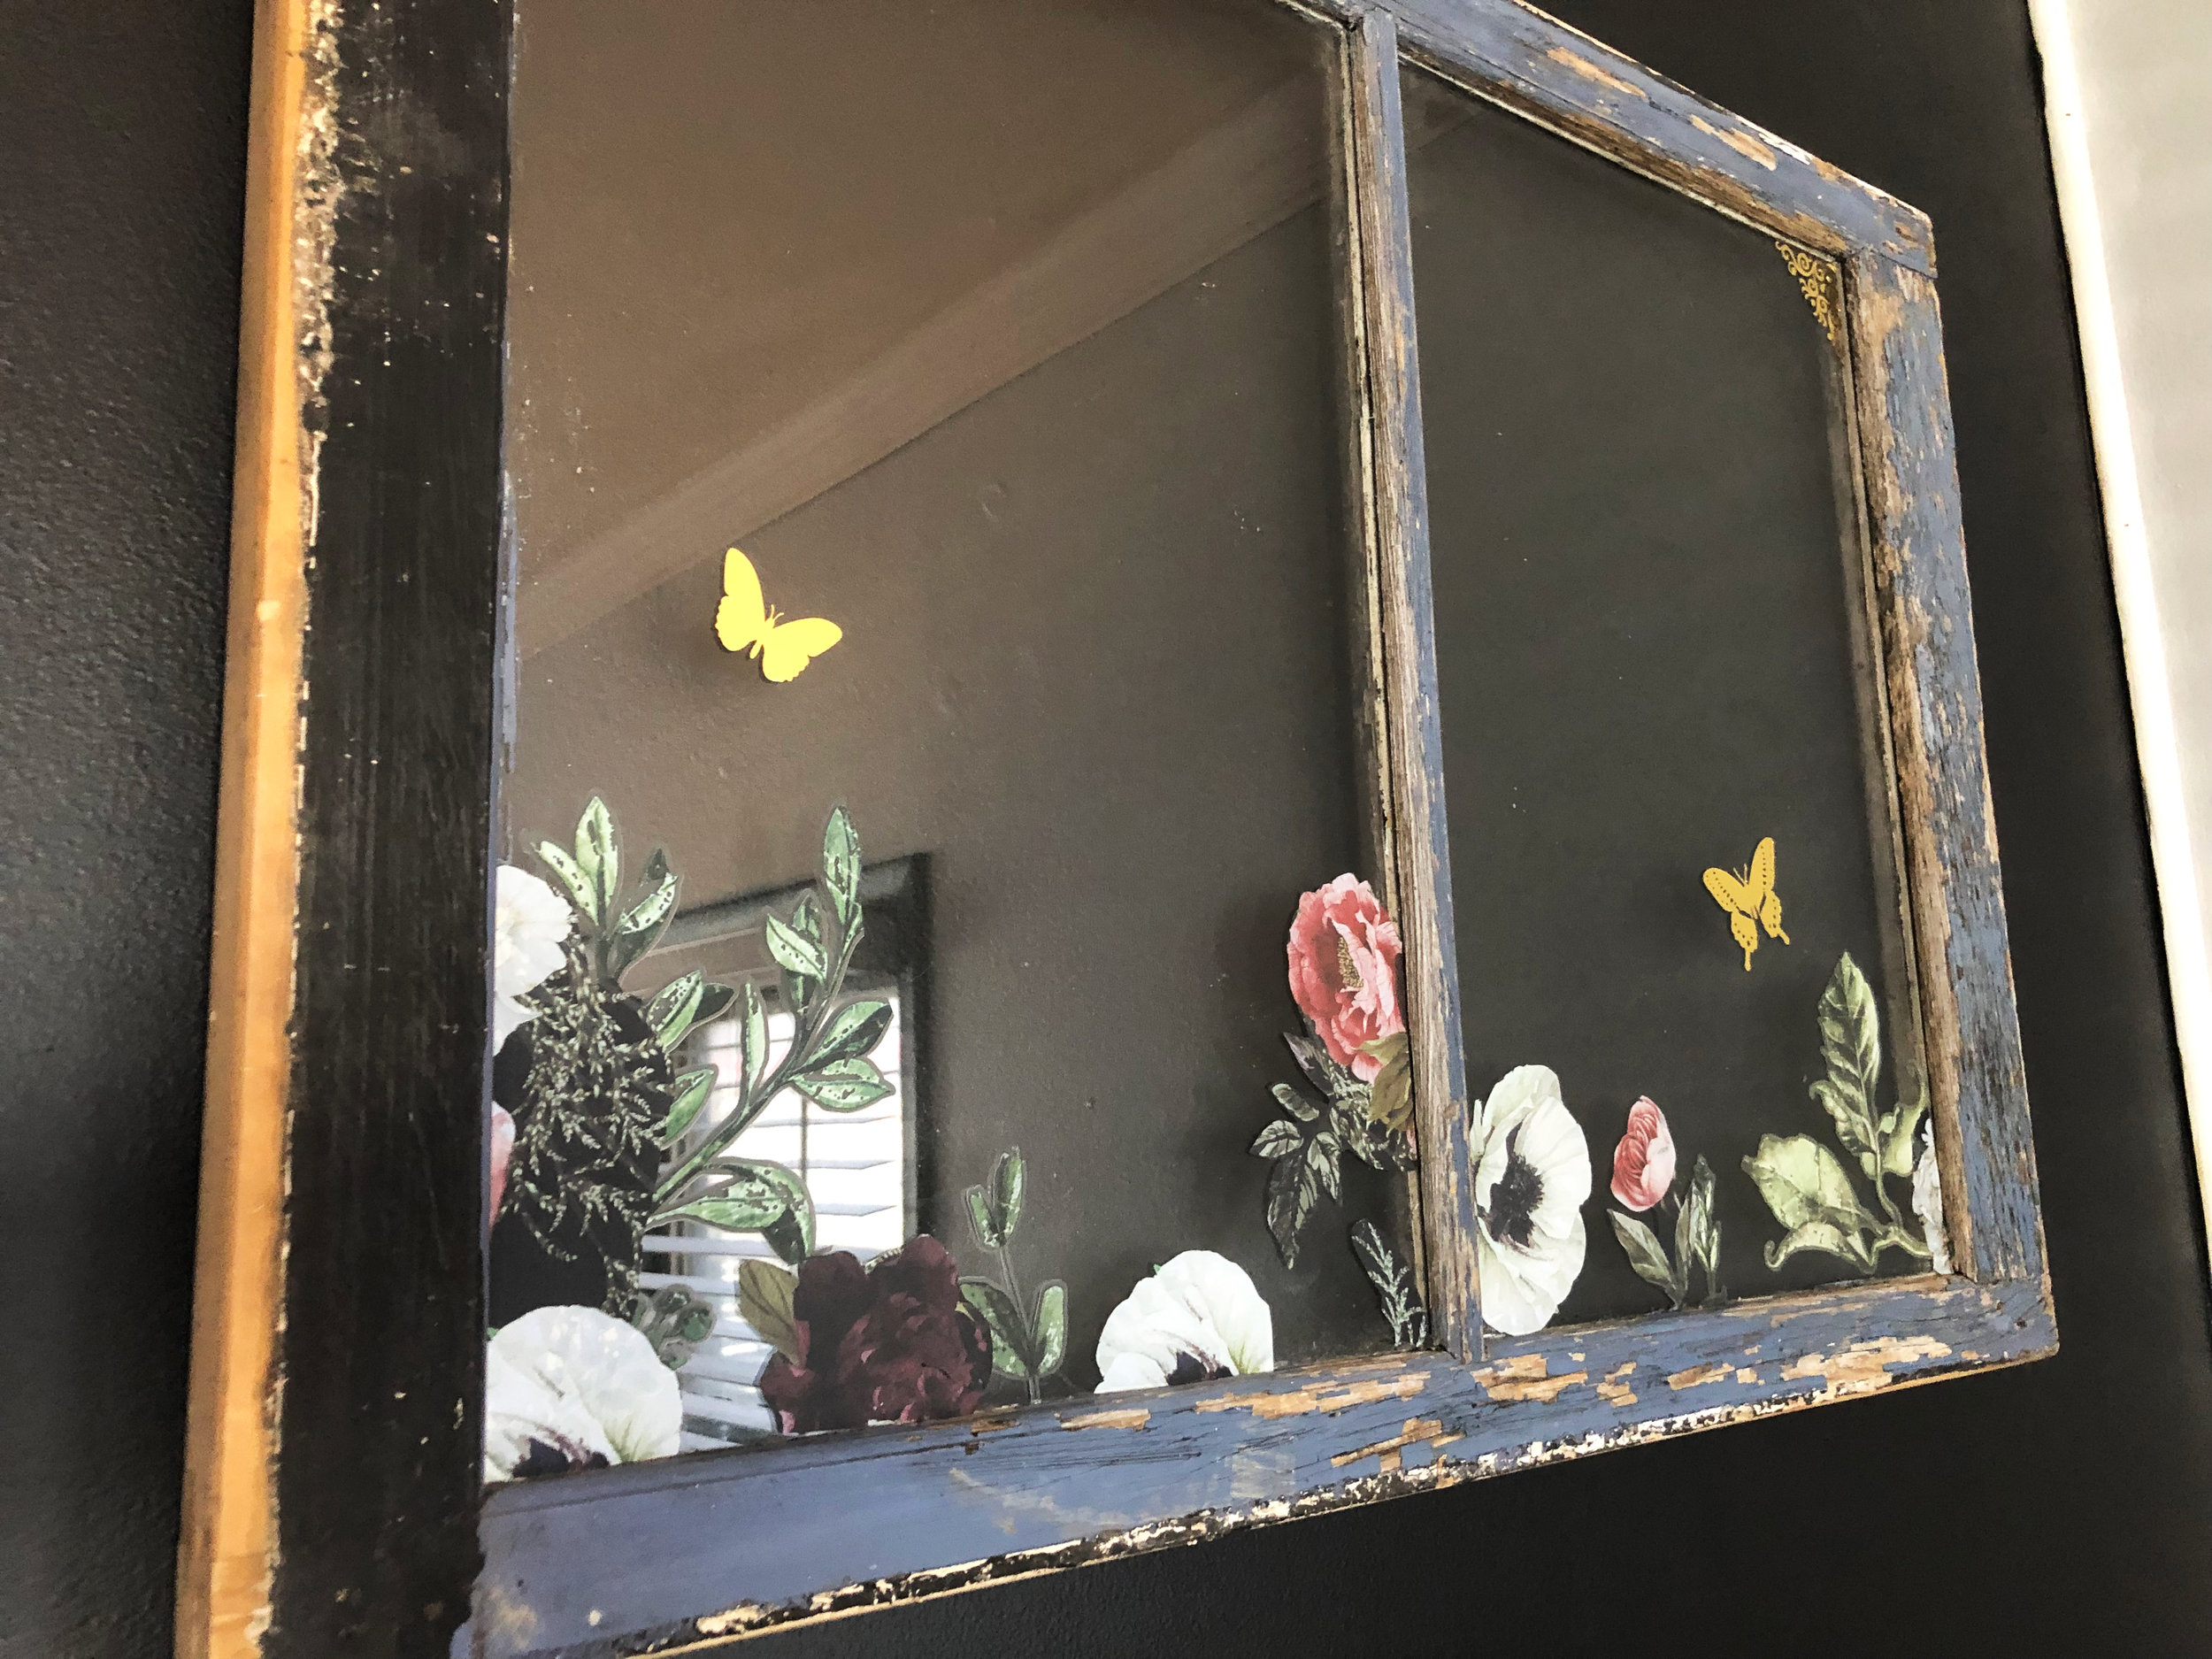 This is a genius upcycle idea to create wall decor on a budget. Use old discarded windows and add some fun designs using the Decor Transfers™. Get a chippy effect by adding paints, then scraping them off to give them a vintage look. Use colors that match the color scheme in your room.